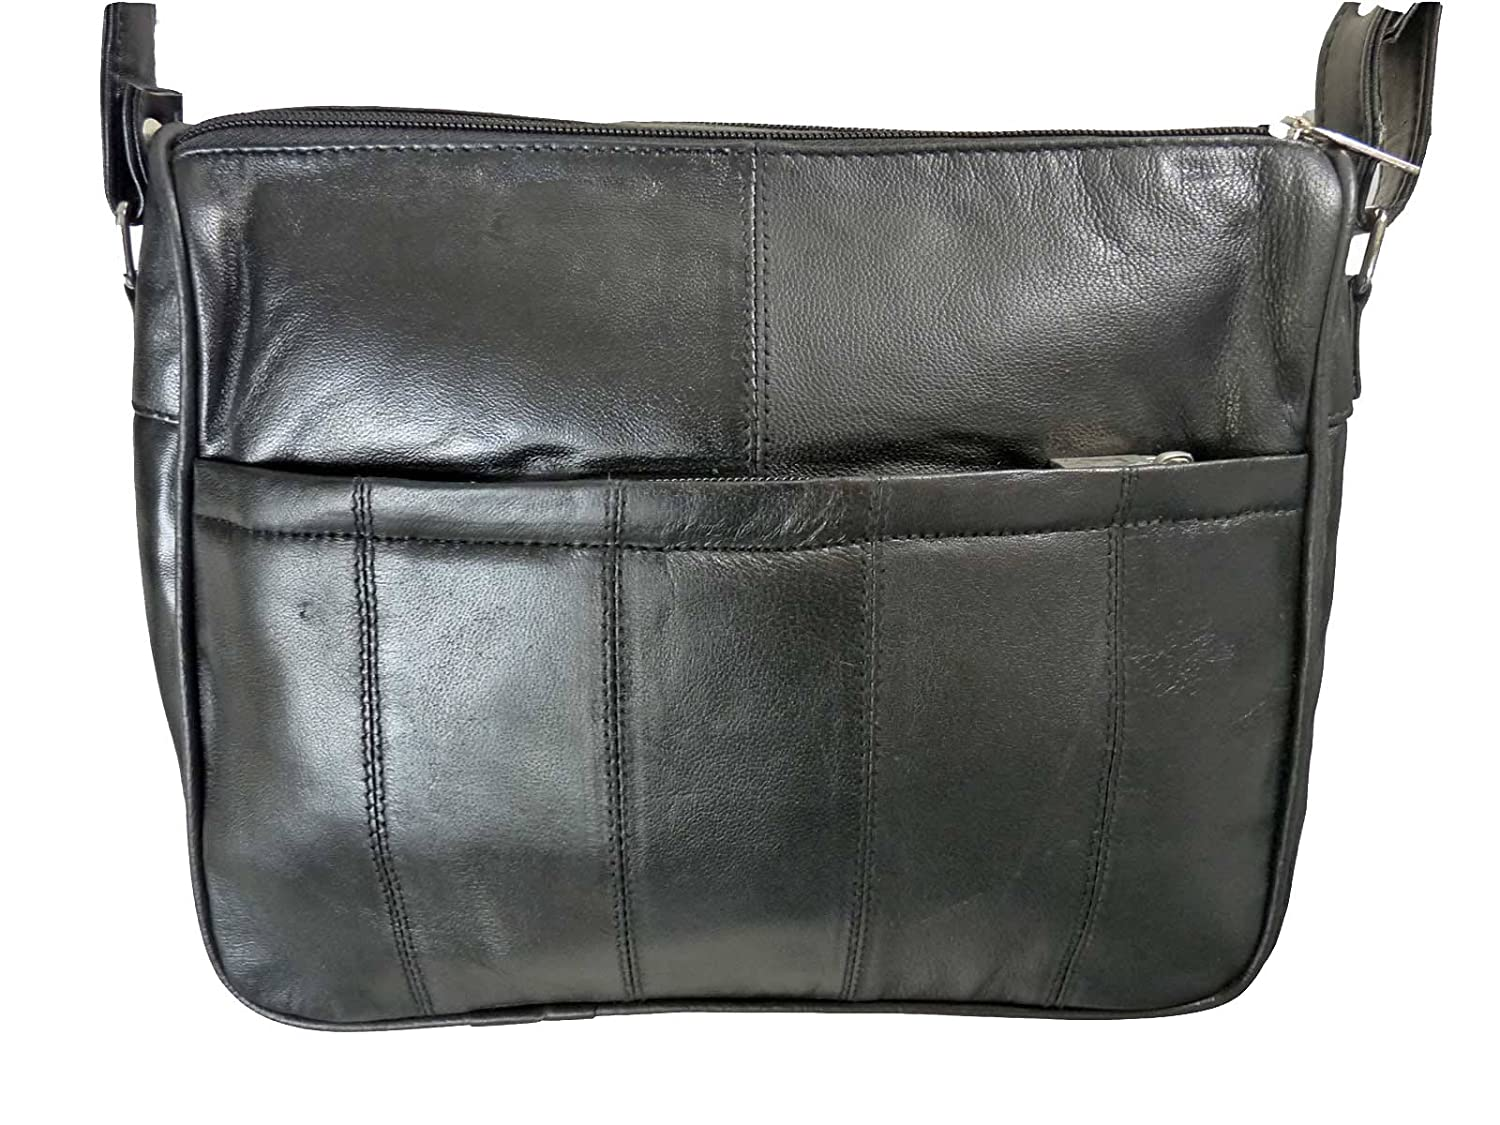 f16bf2076931 Leather Handbag in Soft Black Leather - Ladies Shoulder Bag can be worn  Cross Body - 4 Zipped Compartments - Single Adjustable Shoulder Strap -  Small Medium ...